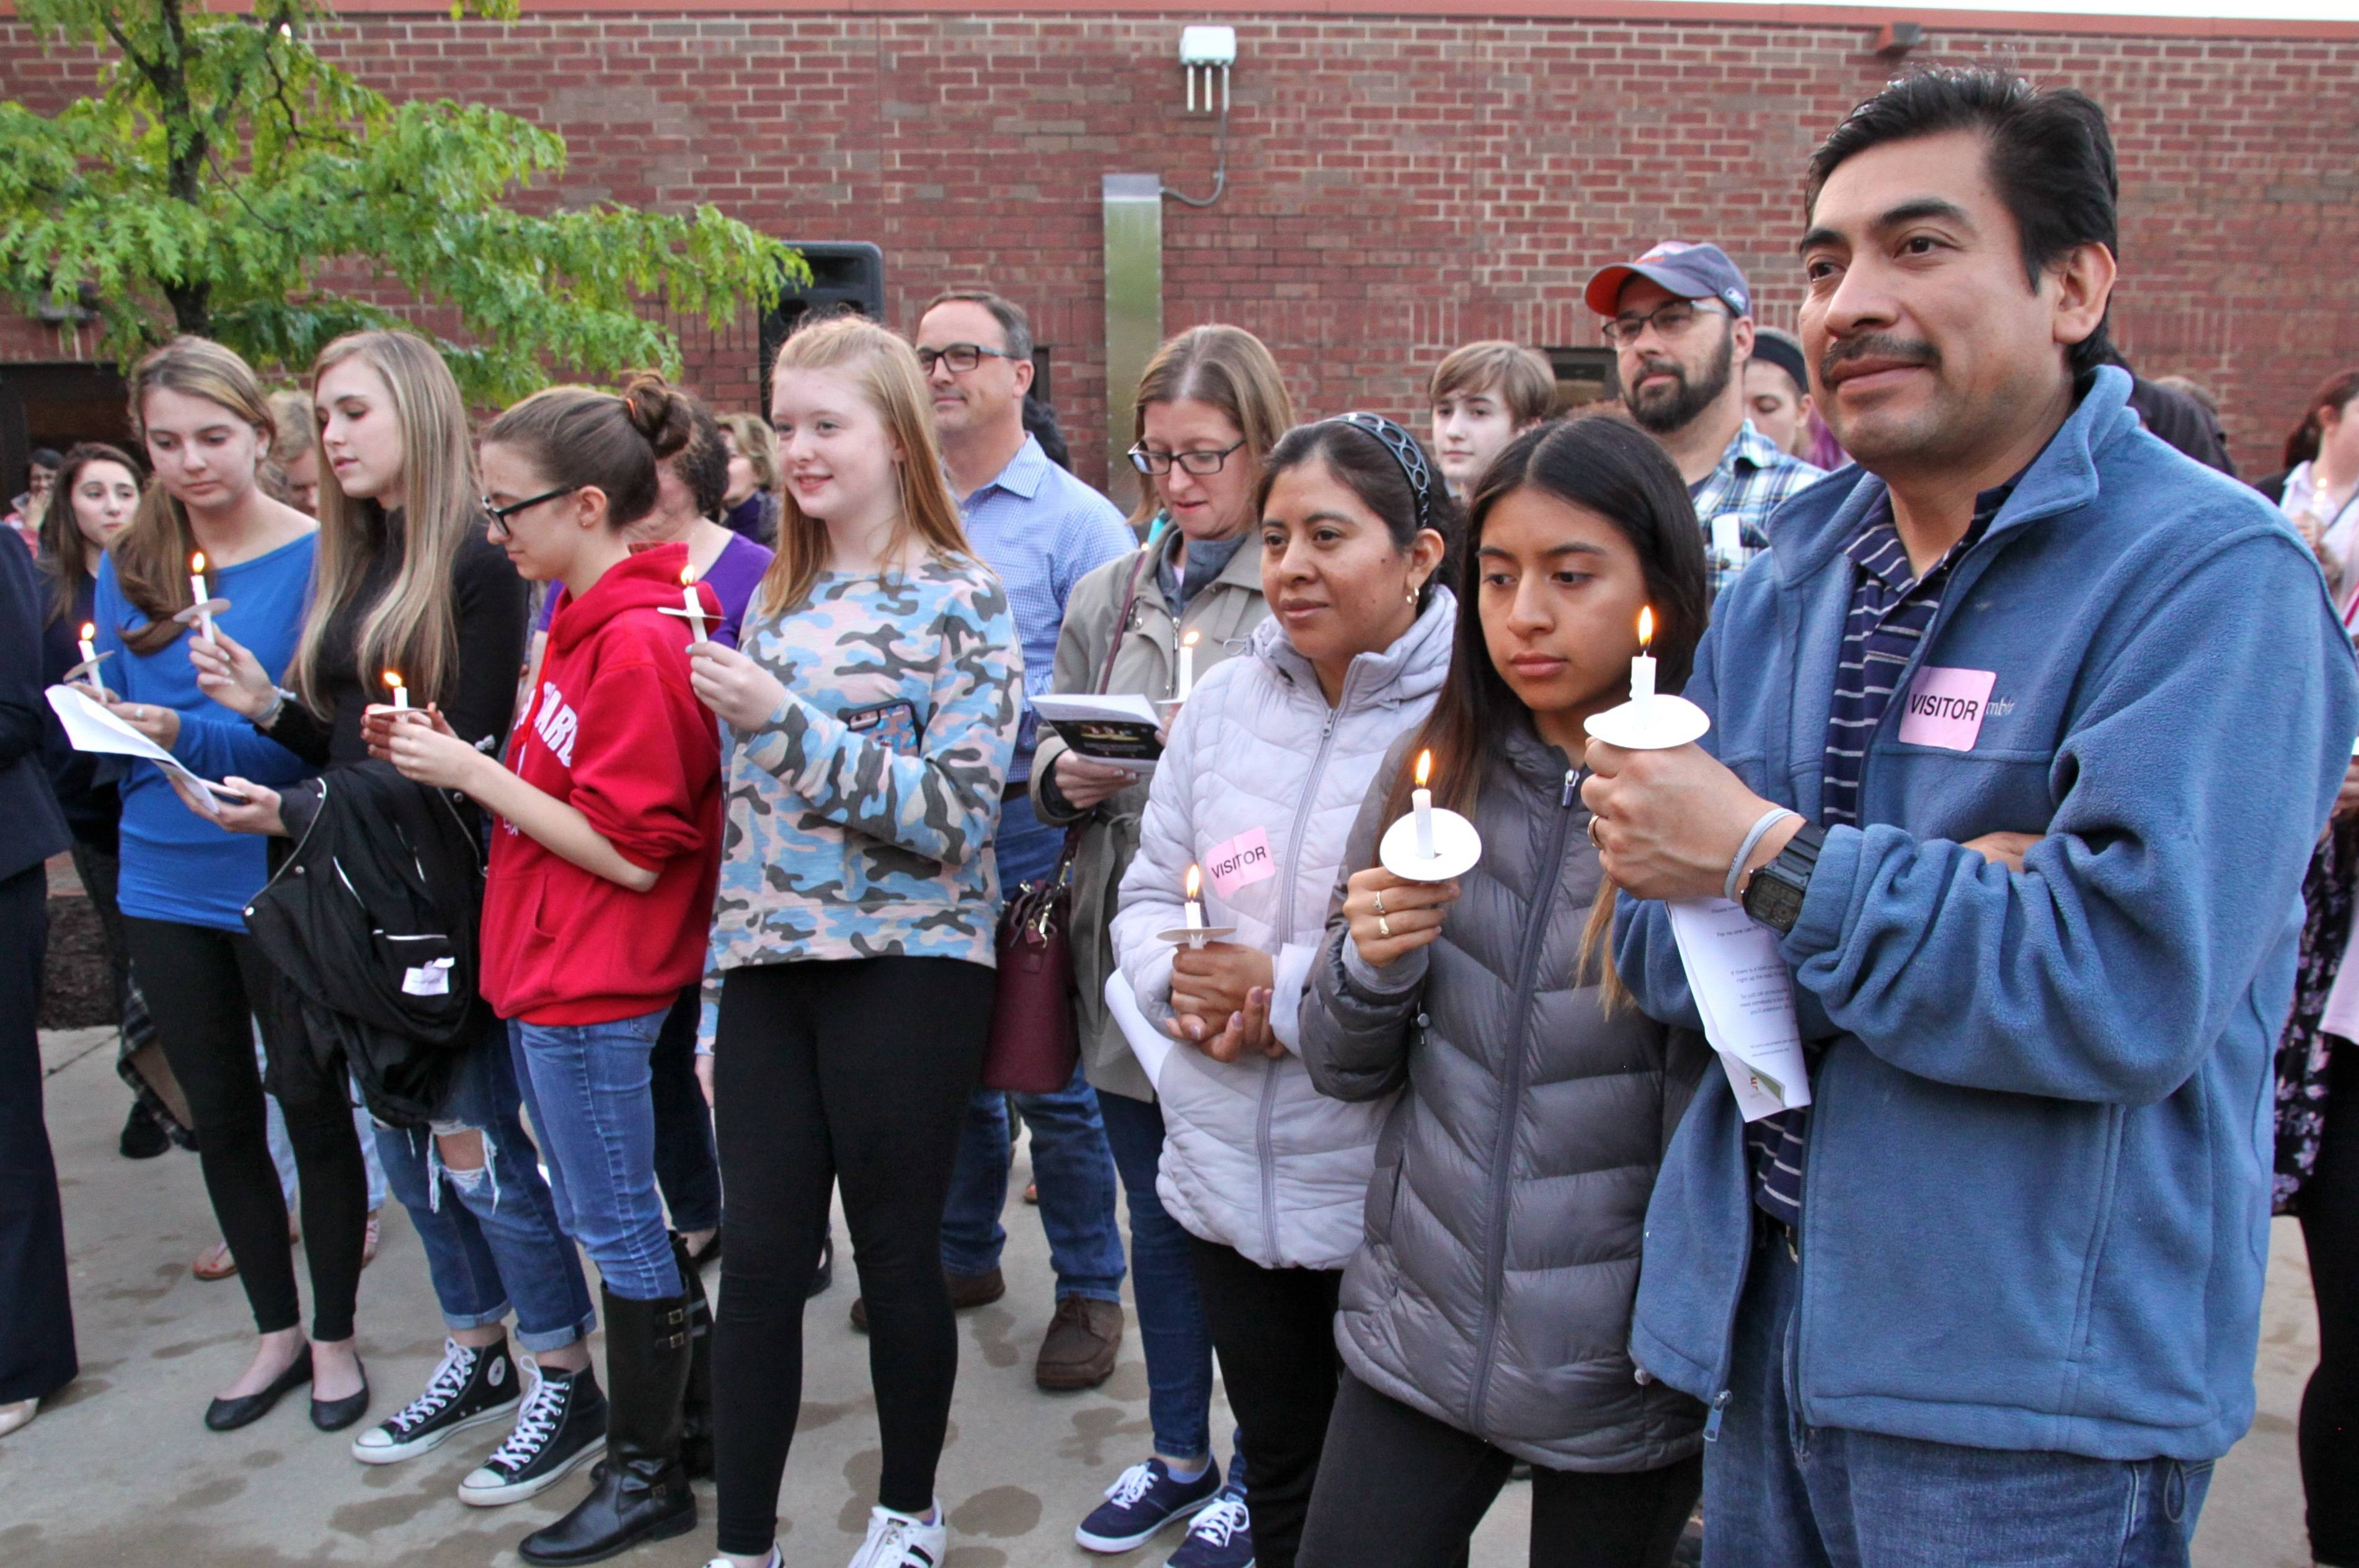 More than 300 people are expected to gather Monday at the Linden Oaks Candlelight Vigil in Naperville for those affected by eating disorders.